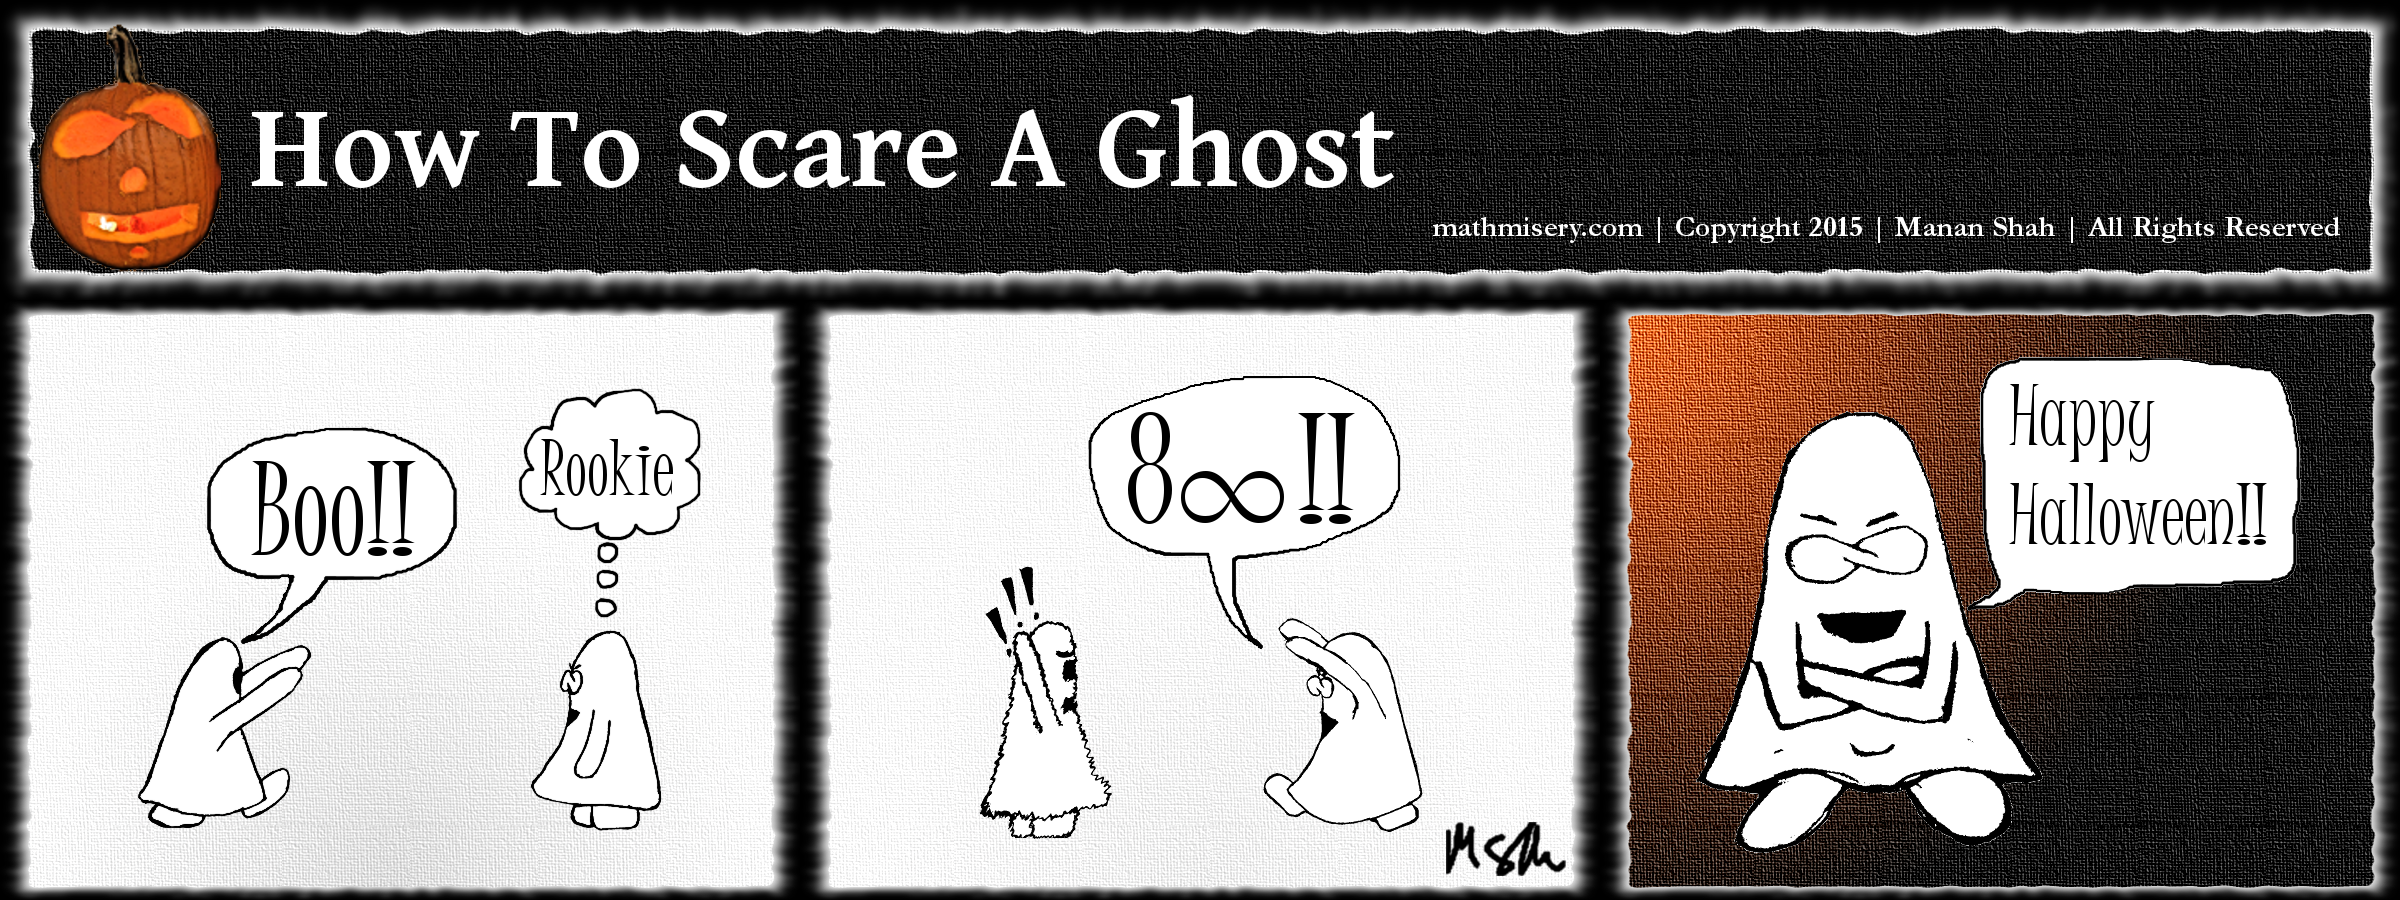 mathematics and ghost Halloween printable worksheets i abcteach provides over 49,000 worksheets page 1 this fun ghost hunt activity can be used year round to reinforce math skills for equivalent fractions click and reveal answers with a colorful halloween theme common core math: kccb4.